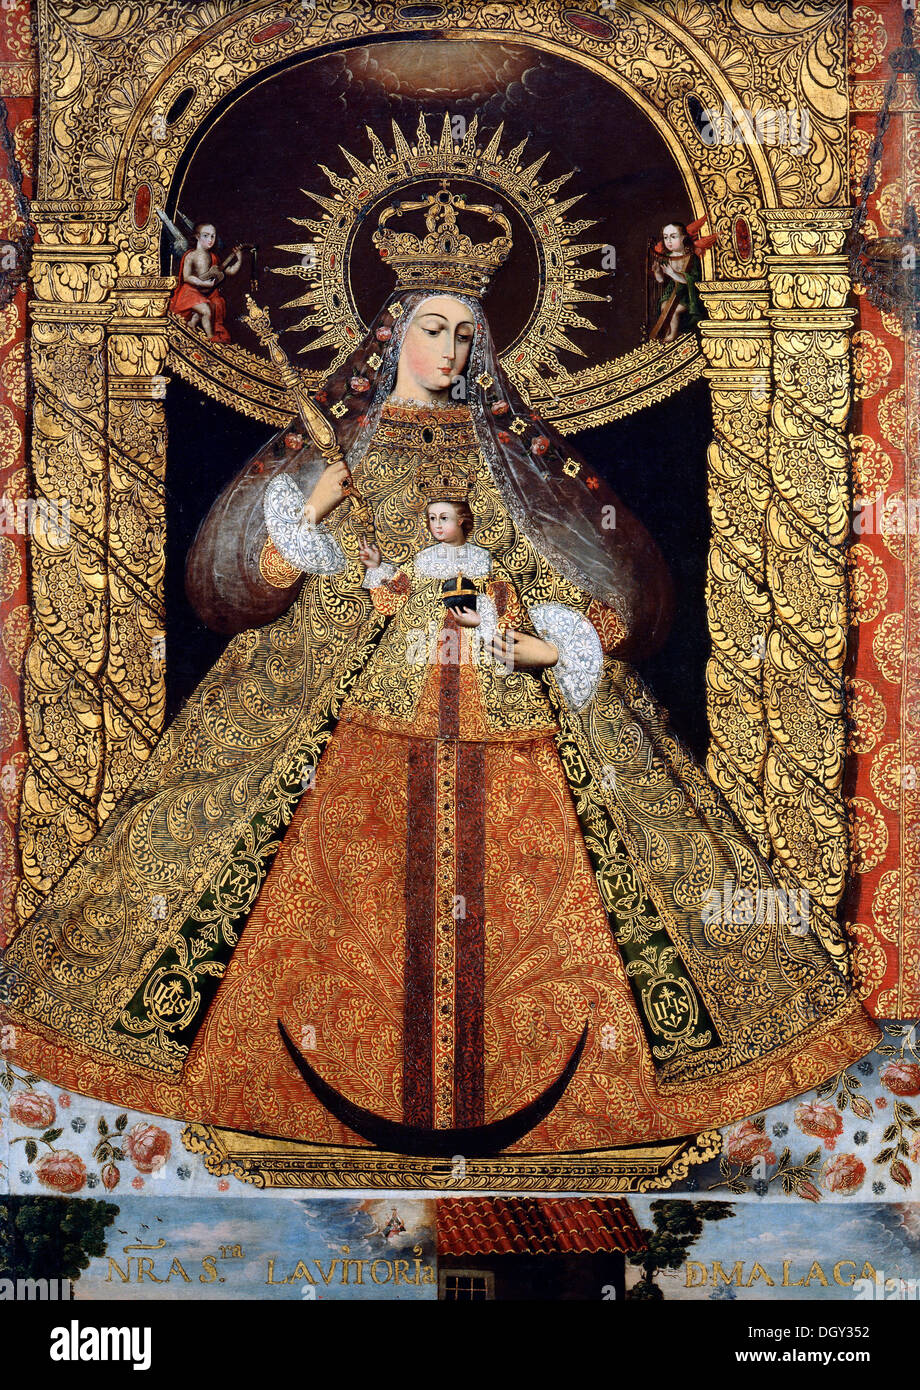 Bolivia, Virgin of the Victory of Malaga. Circa 1740. Oil on canvas with gold leaf. Denver Art Museum, Denver, USA. - Stock Image